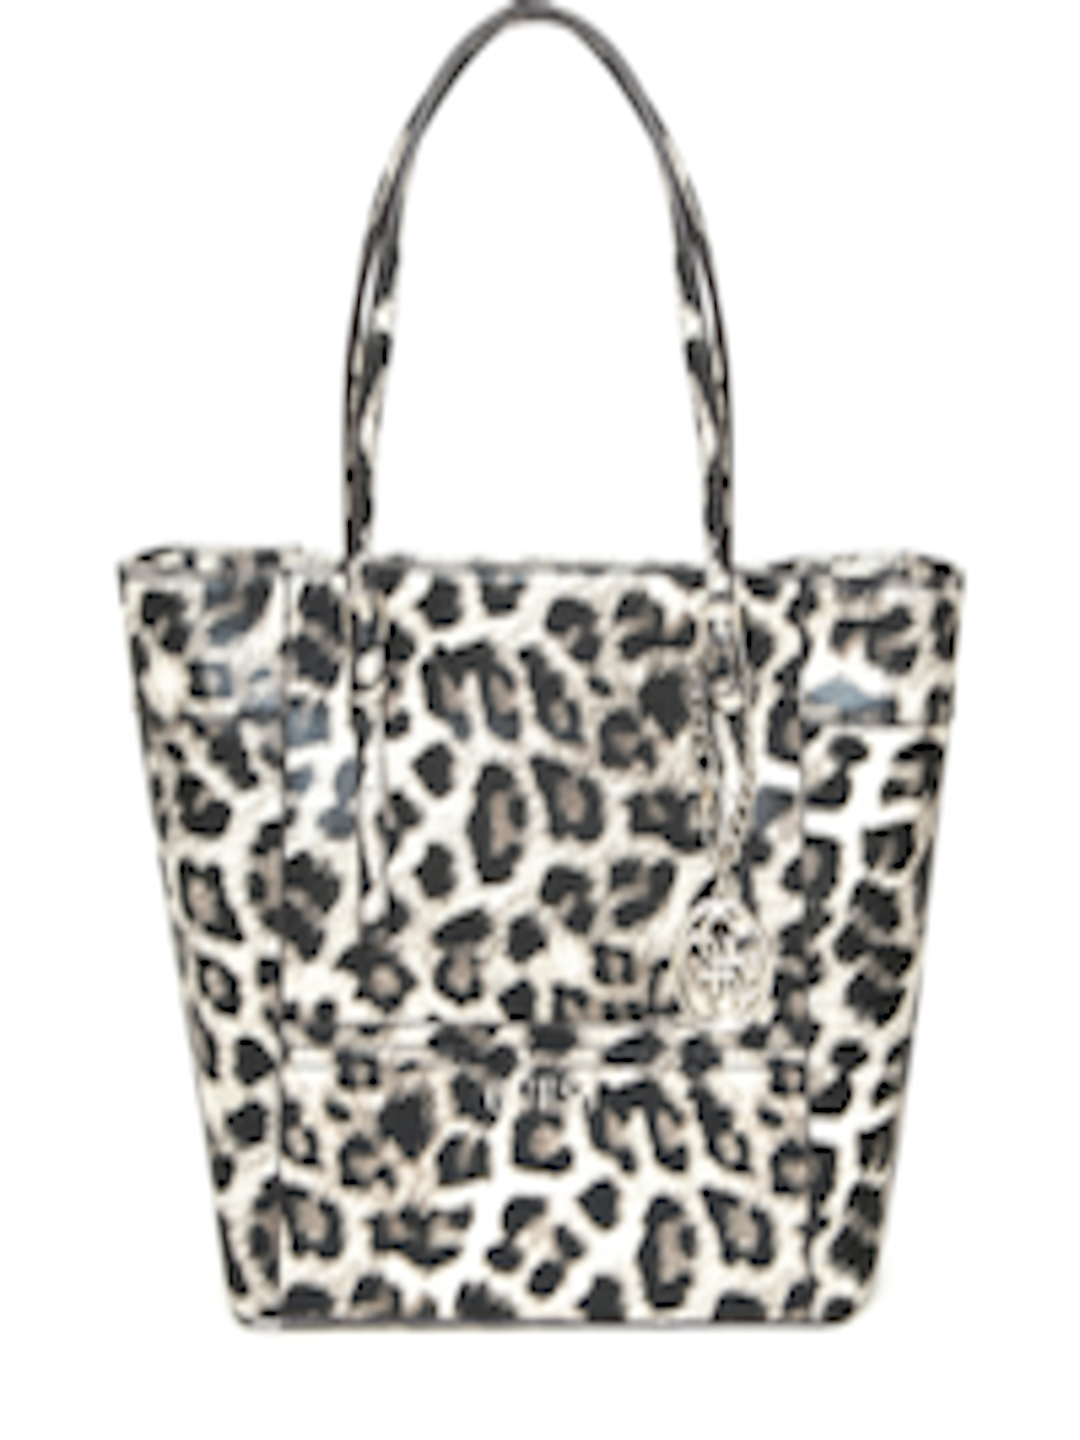 7ec80dd211c2 Buy GUESS Black & Beige Leopard Print Shoulder Bag - Handbags for Women  1668082 | Myntra